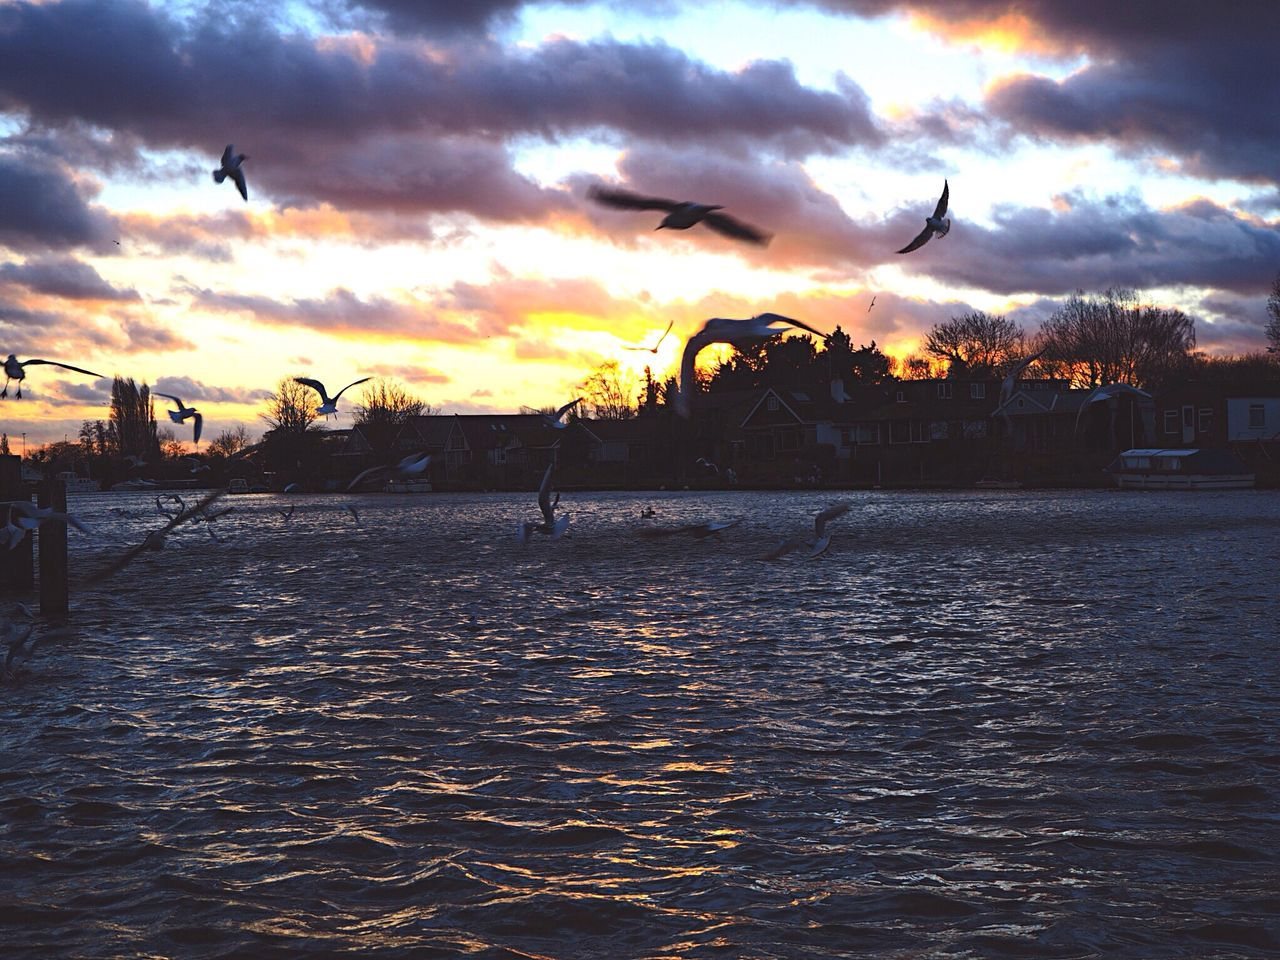 sunset, cloud - sky, water, sky, silhouette, nature, sea, beauty in nature, outdoors, bird, scenics, flying, no people, animal themes, animals in the wild, architecture, spread wings, city, day